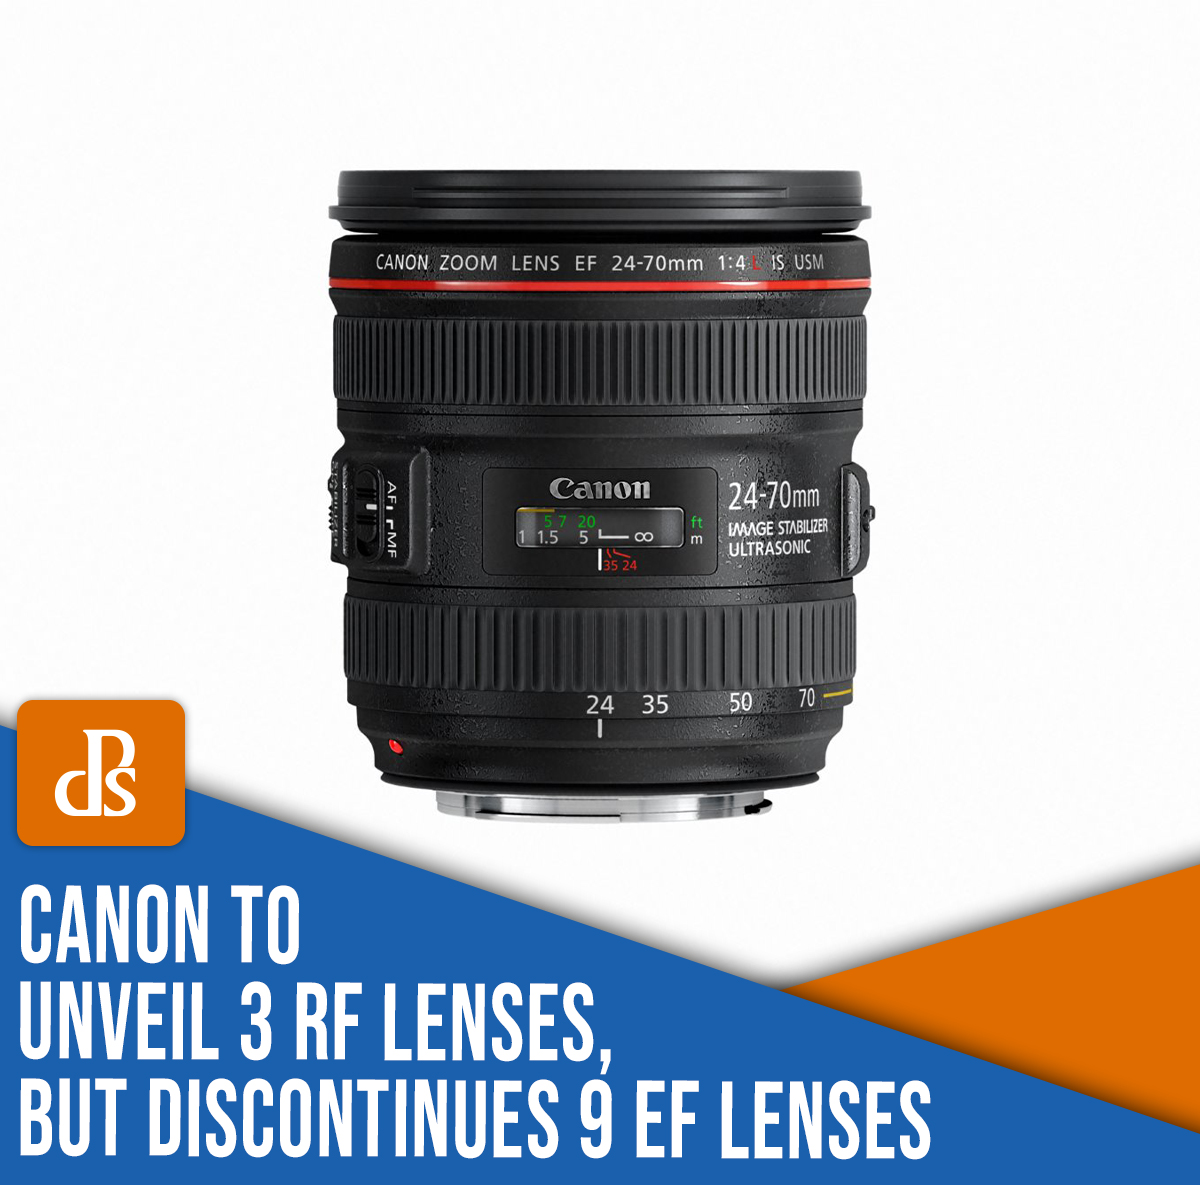 https://i2.wp.com/digital-photography-school.com/wp-content/uploads/2021/04/canon-unveils-RF-lenses-discontinues-EF-lenses-2.jpg?resize=1200%2C1185&ssl=1